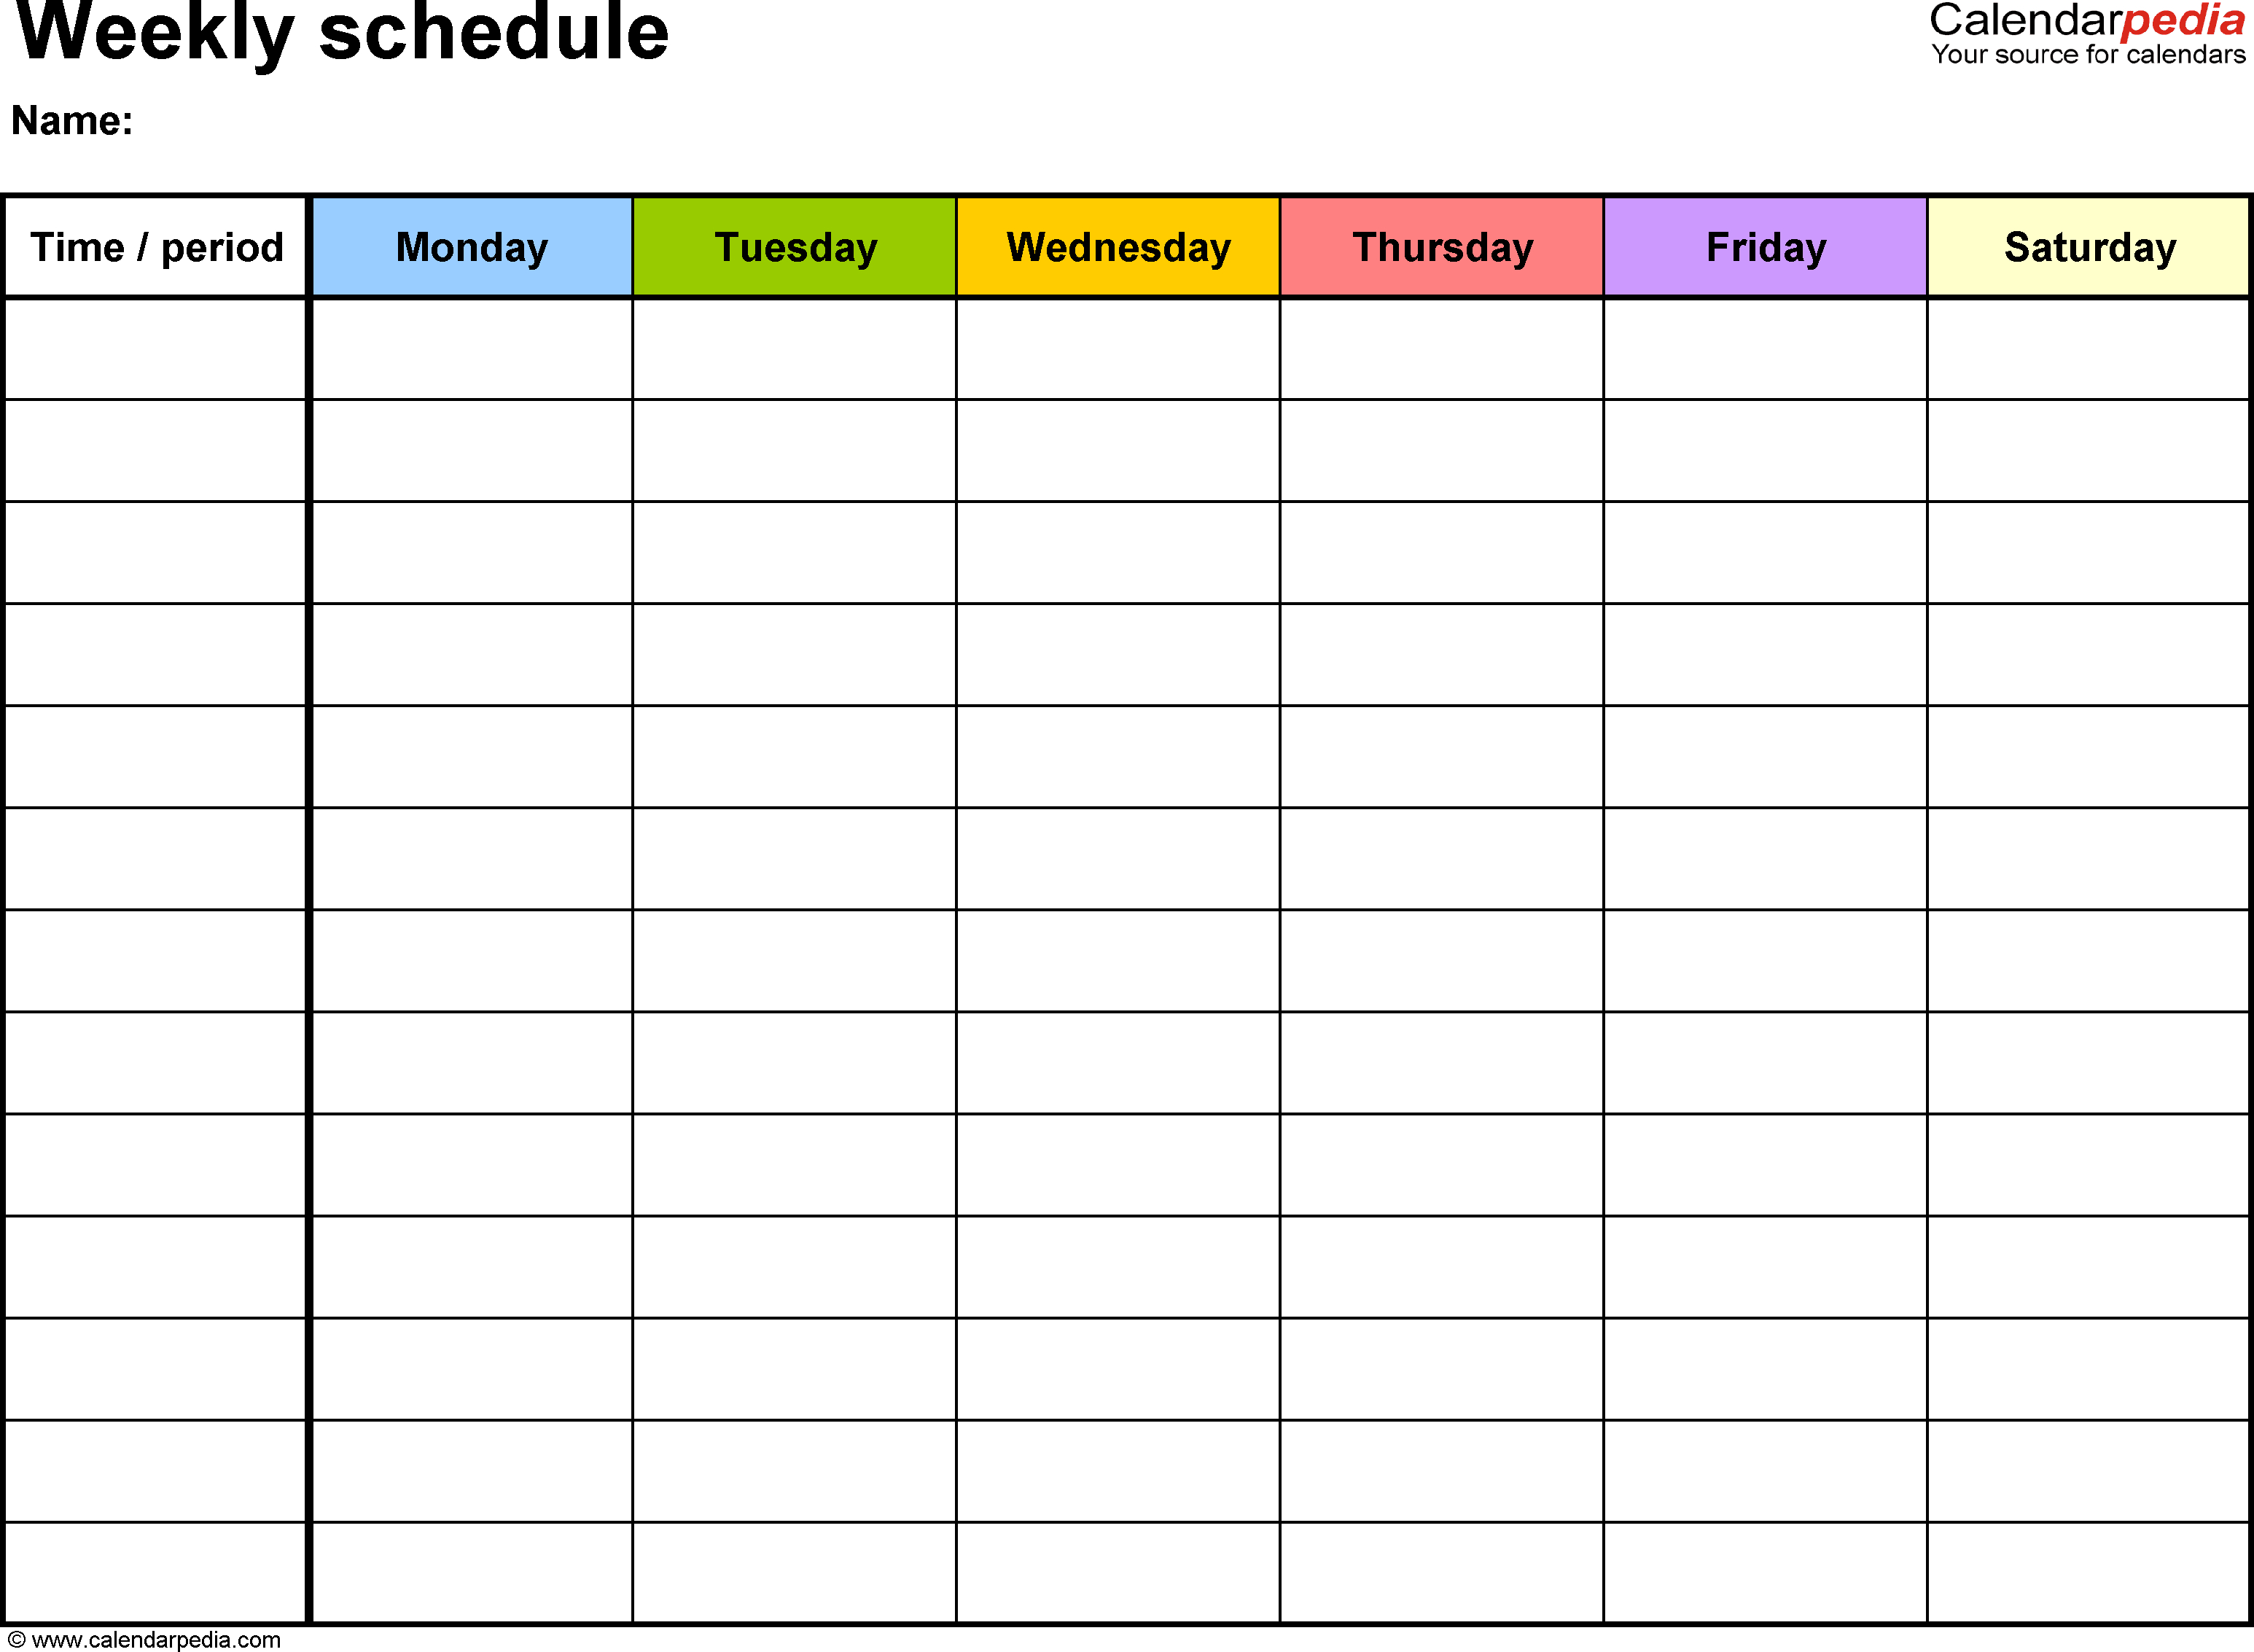 Free Weekly Schedule Templates For Word - 18 Templates pertaining to Monday Through Friday Blank Calendar Template